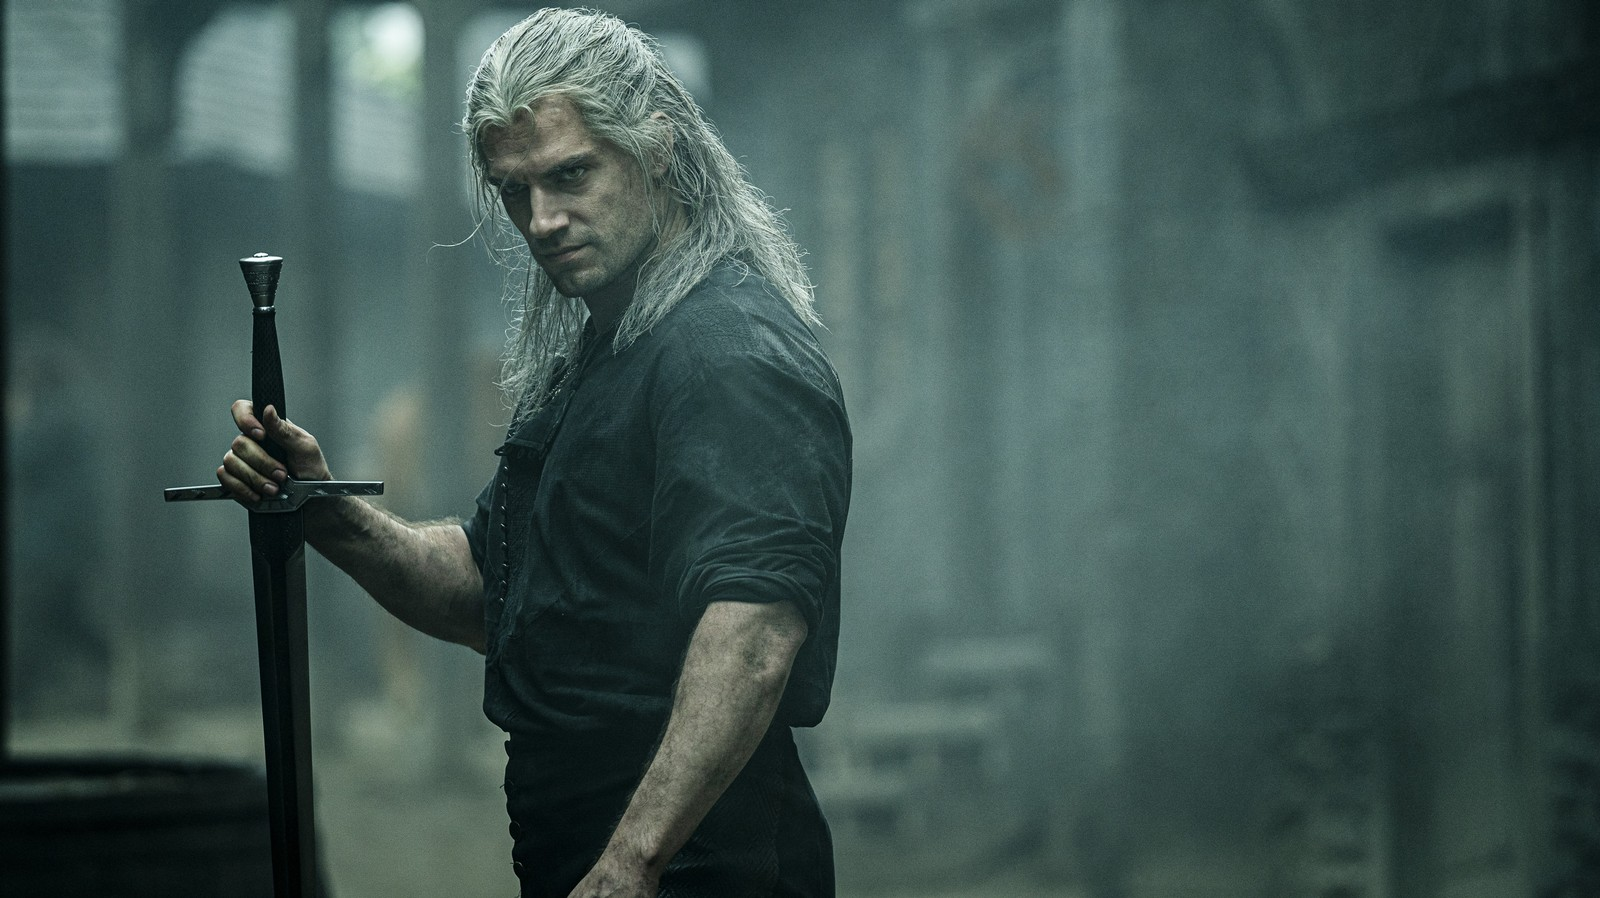 The Netflix Witcher Series Thinks Way Too Big, Way Too Fast